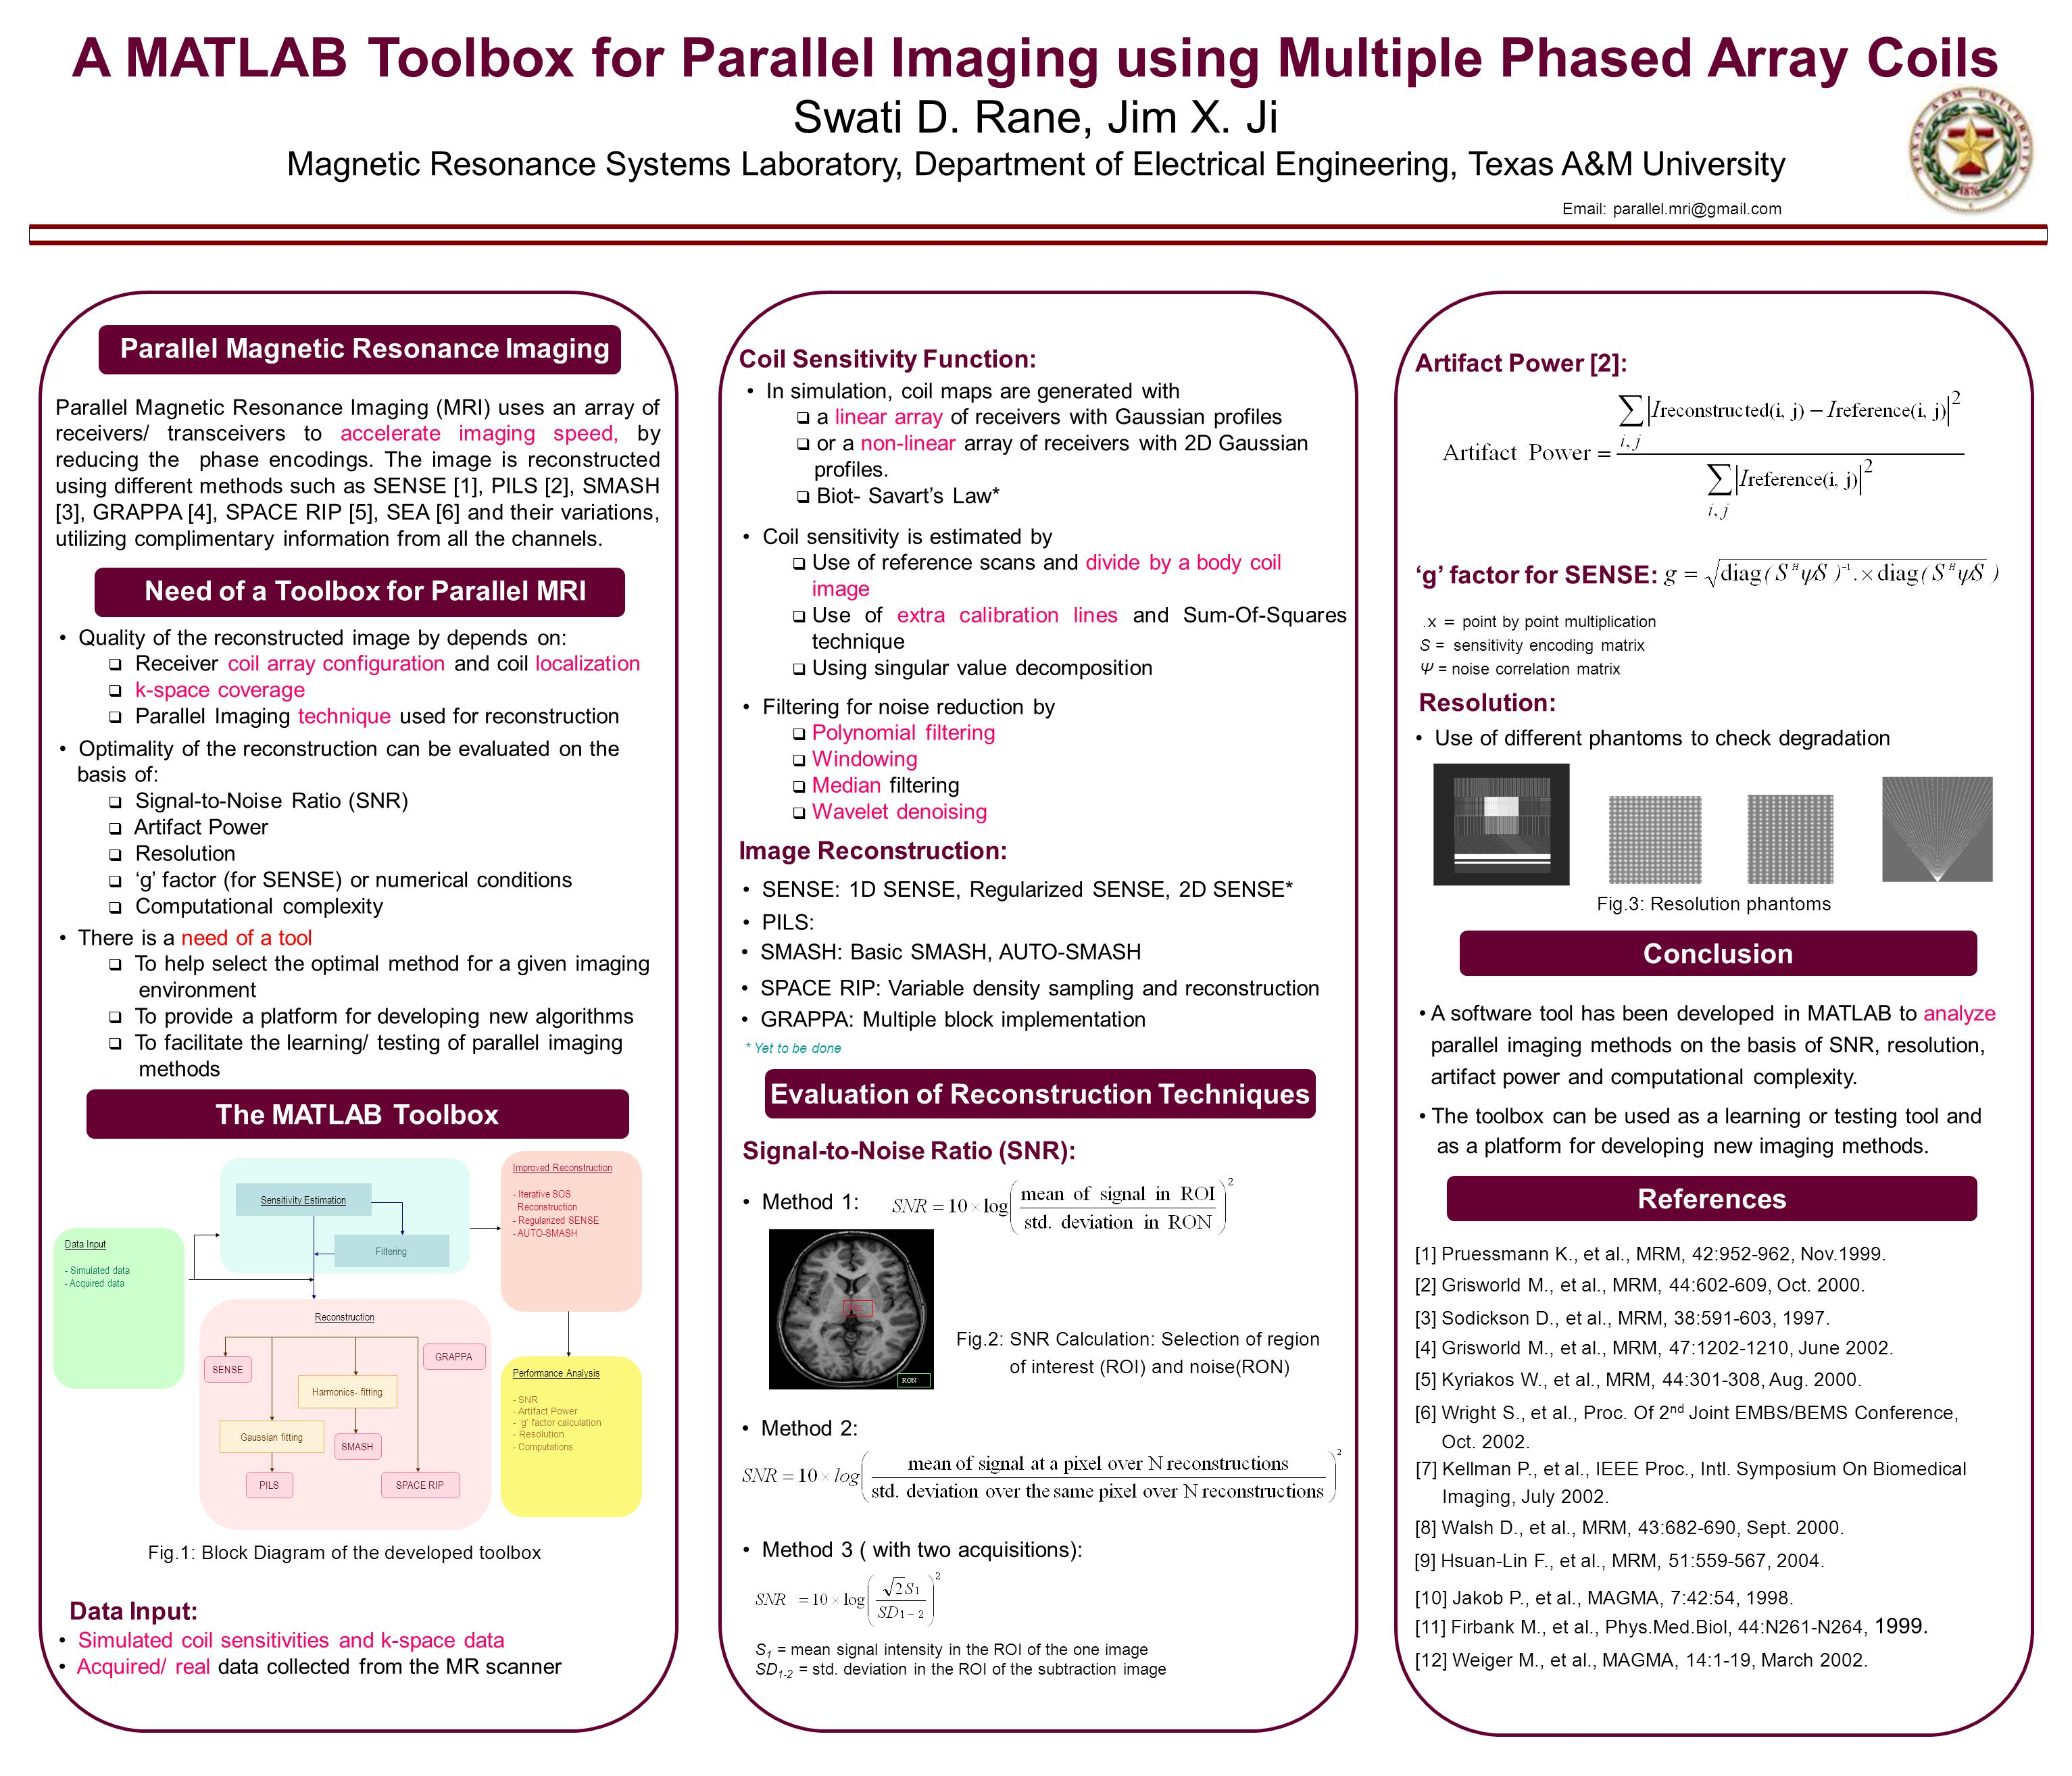 A MATLAB Toolbox for Parallel Imaging using Multiple Phased Array Coils Swati D. Rane, Jim X. Ji Magnetic Resonance Systems Laboratory, Department of